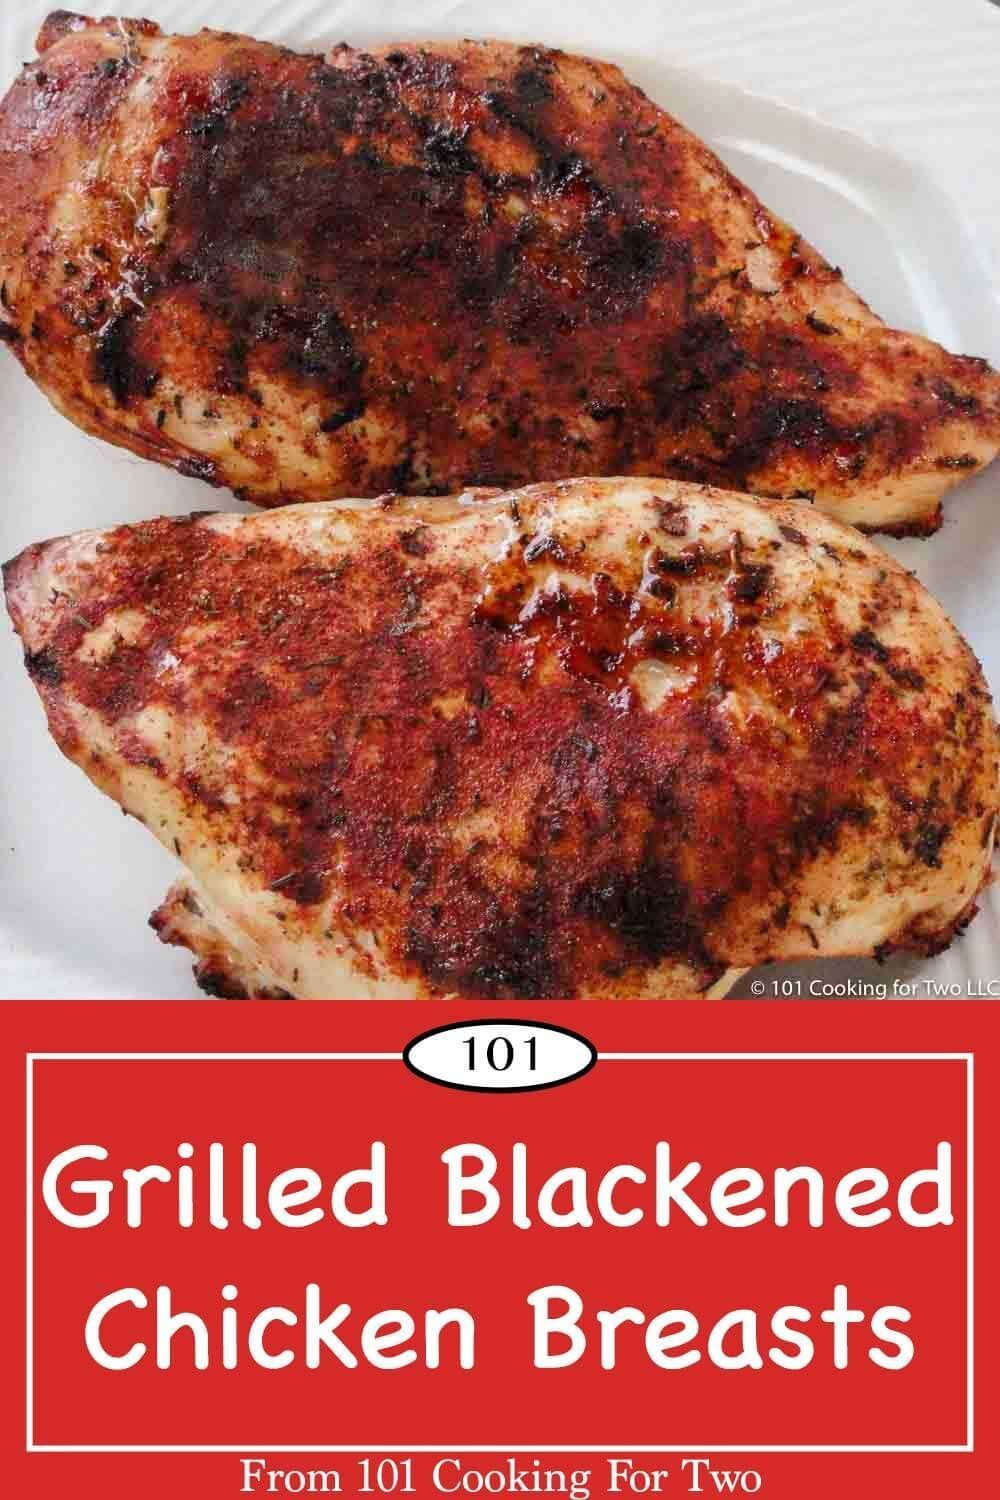 Grilled Blackened Chicken Breasts #blackenedchicken Classic grilled blackened chicken breast bursting with spicy grilled goodness that you will love. Just follow the easy step by step photo instructions. #blackenedchicken Grilled Blackened Chicken Breasts #blackenedchicken Classic grilled blackened chicken breast bursting with spicy grilled goodness that you will love. Just follow the easy step by step photo instructions. #blackenedchicken